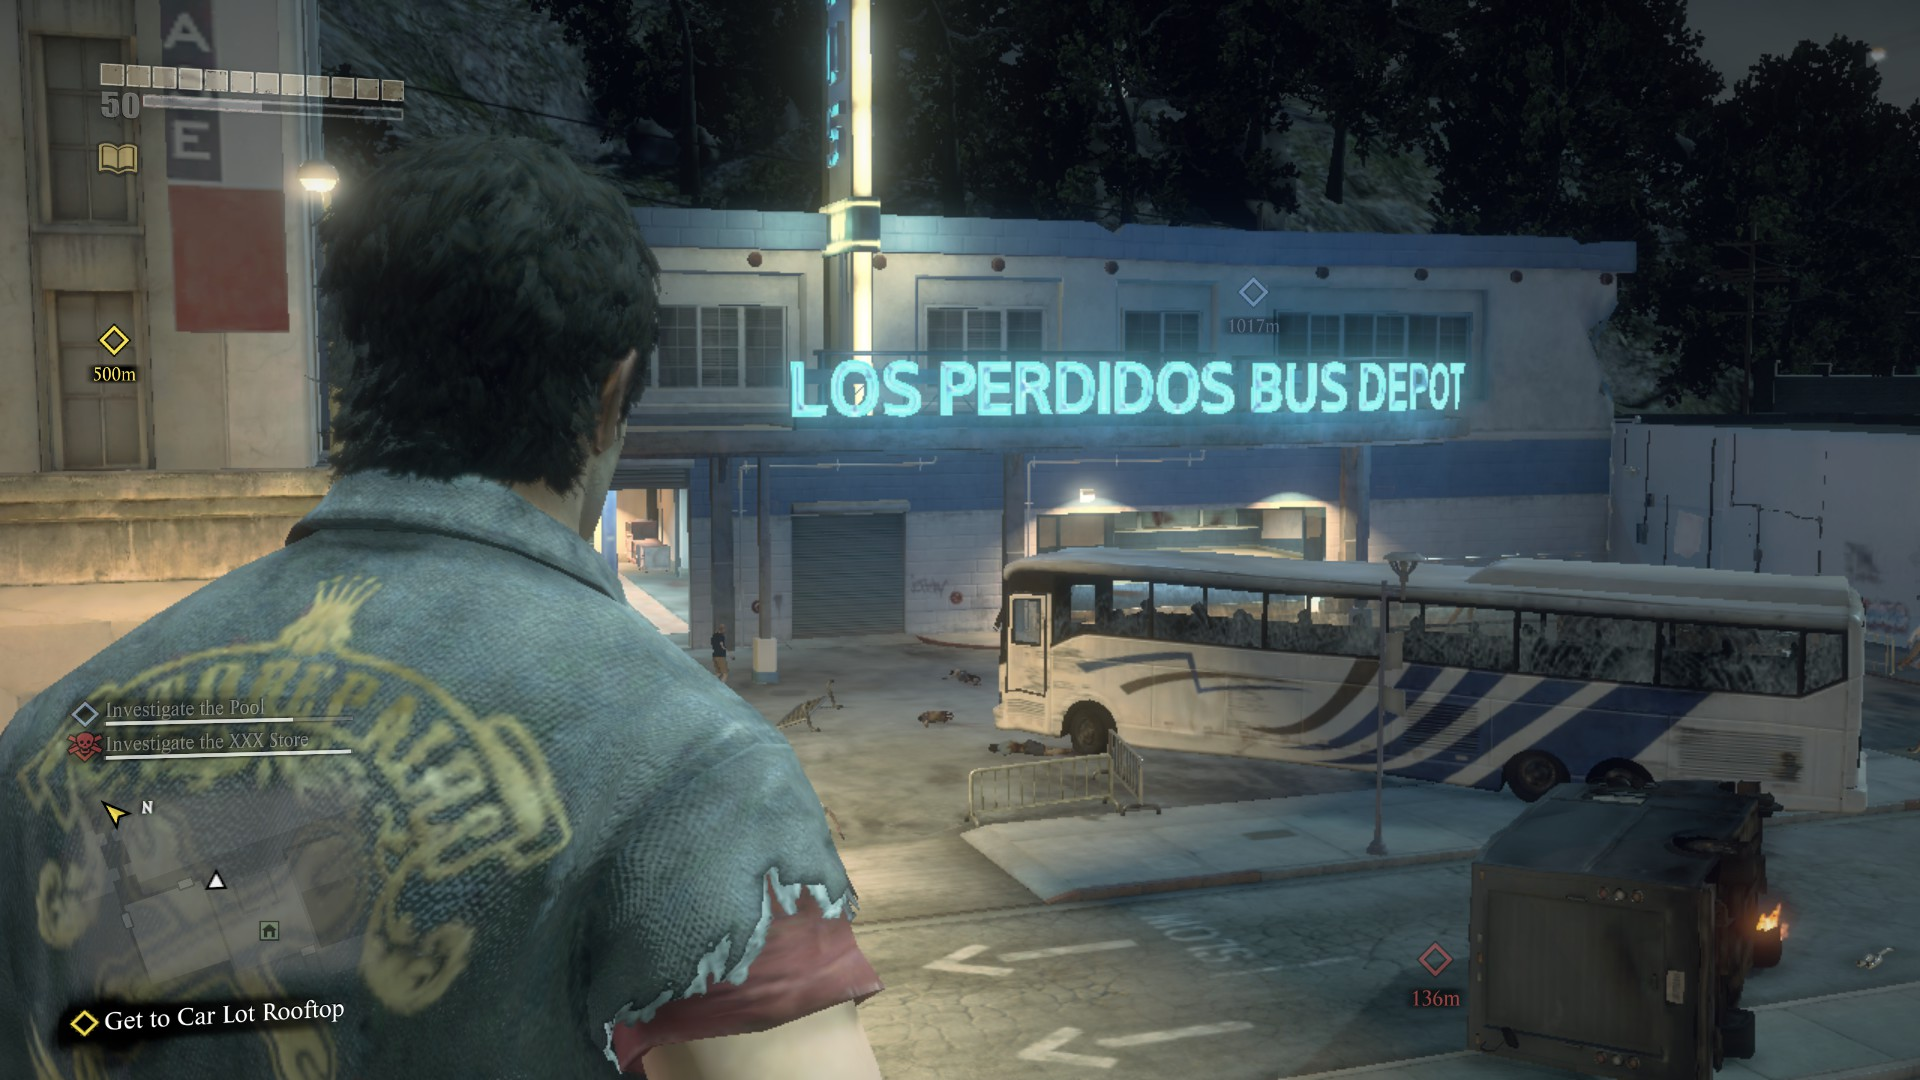 Los perdidos bus depot dead rising wiki fandom powered by wikia malvernweather Image collections